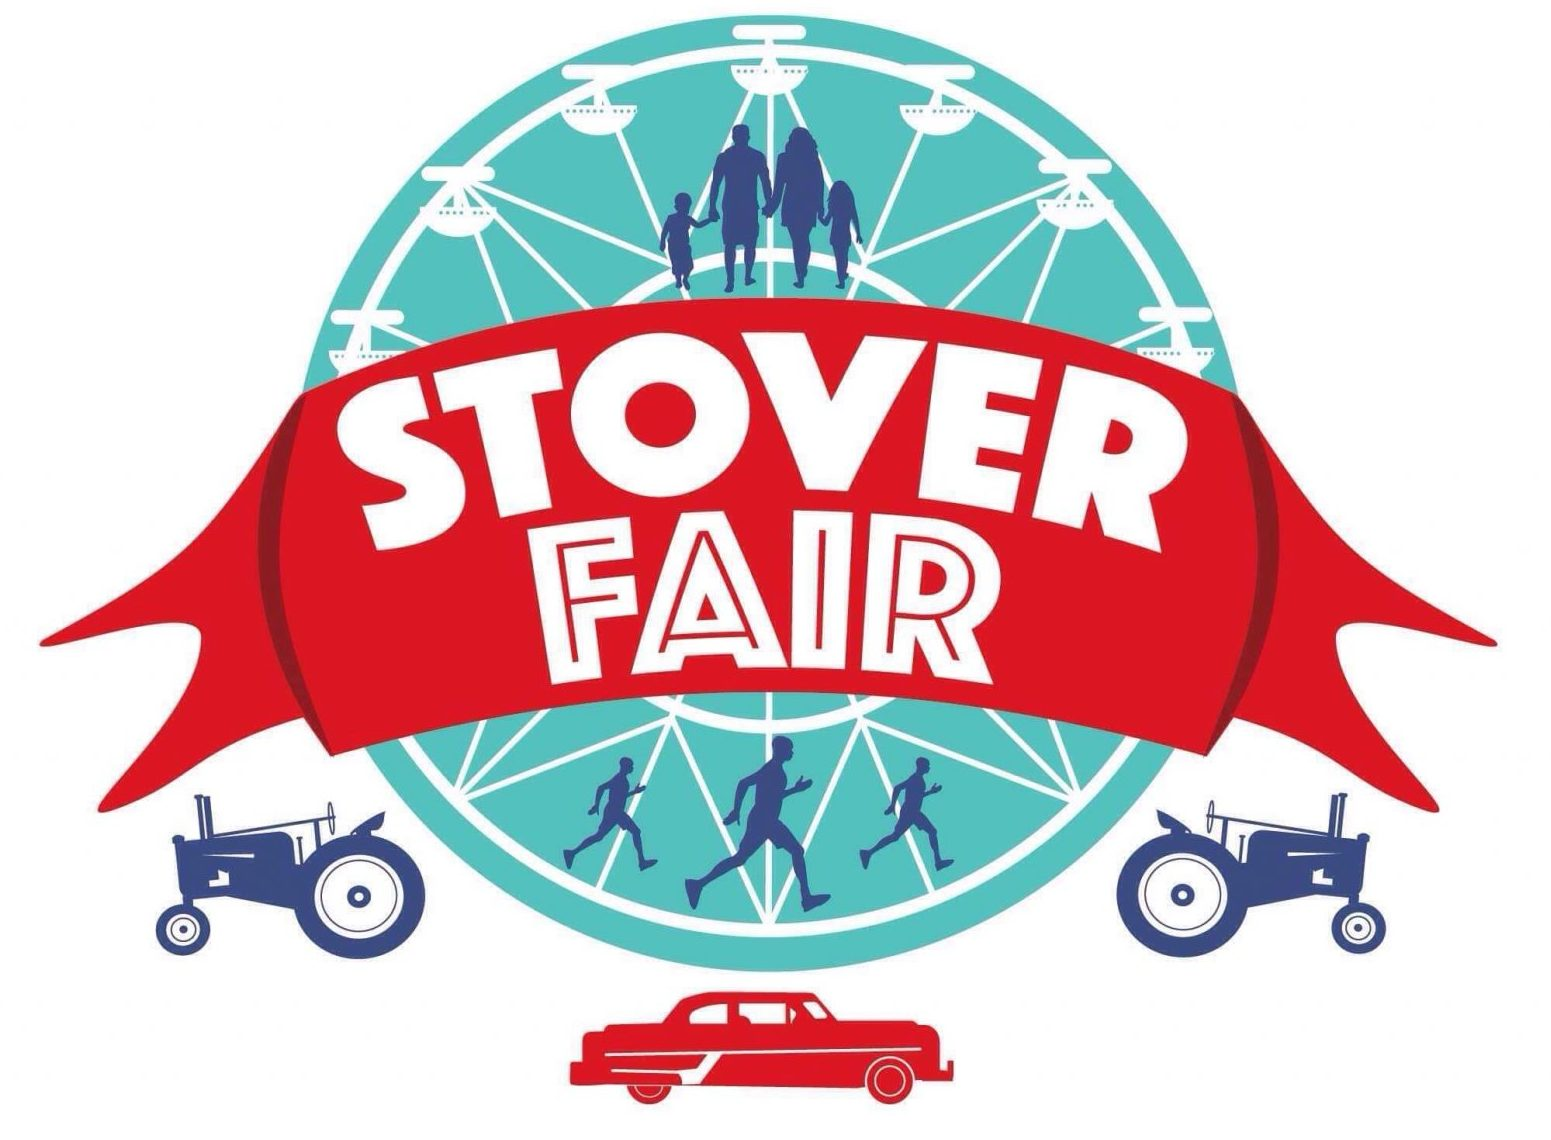 Welcome to the Stover Fair